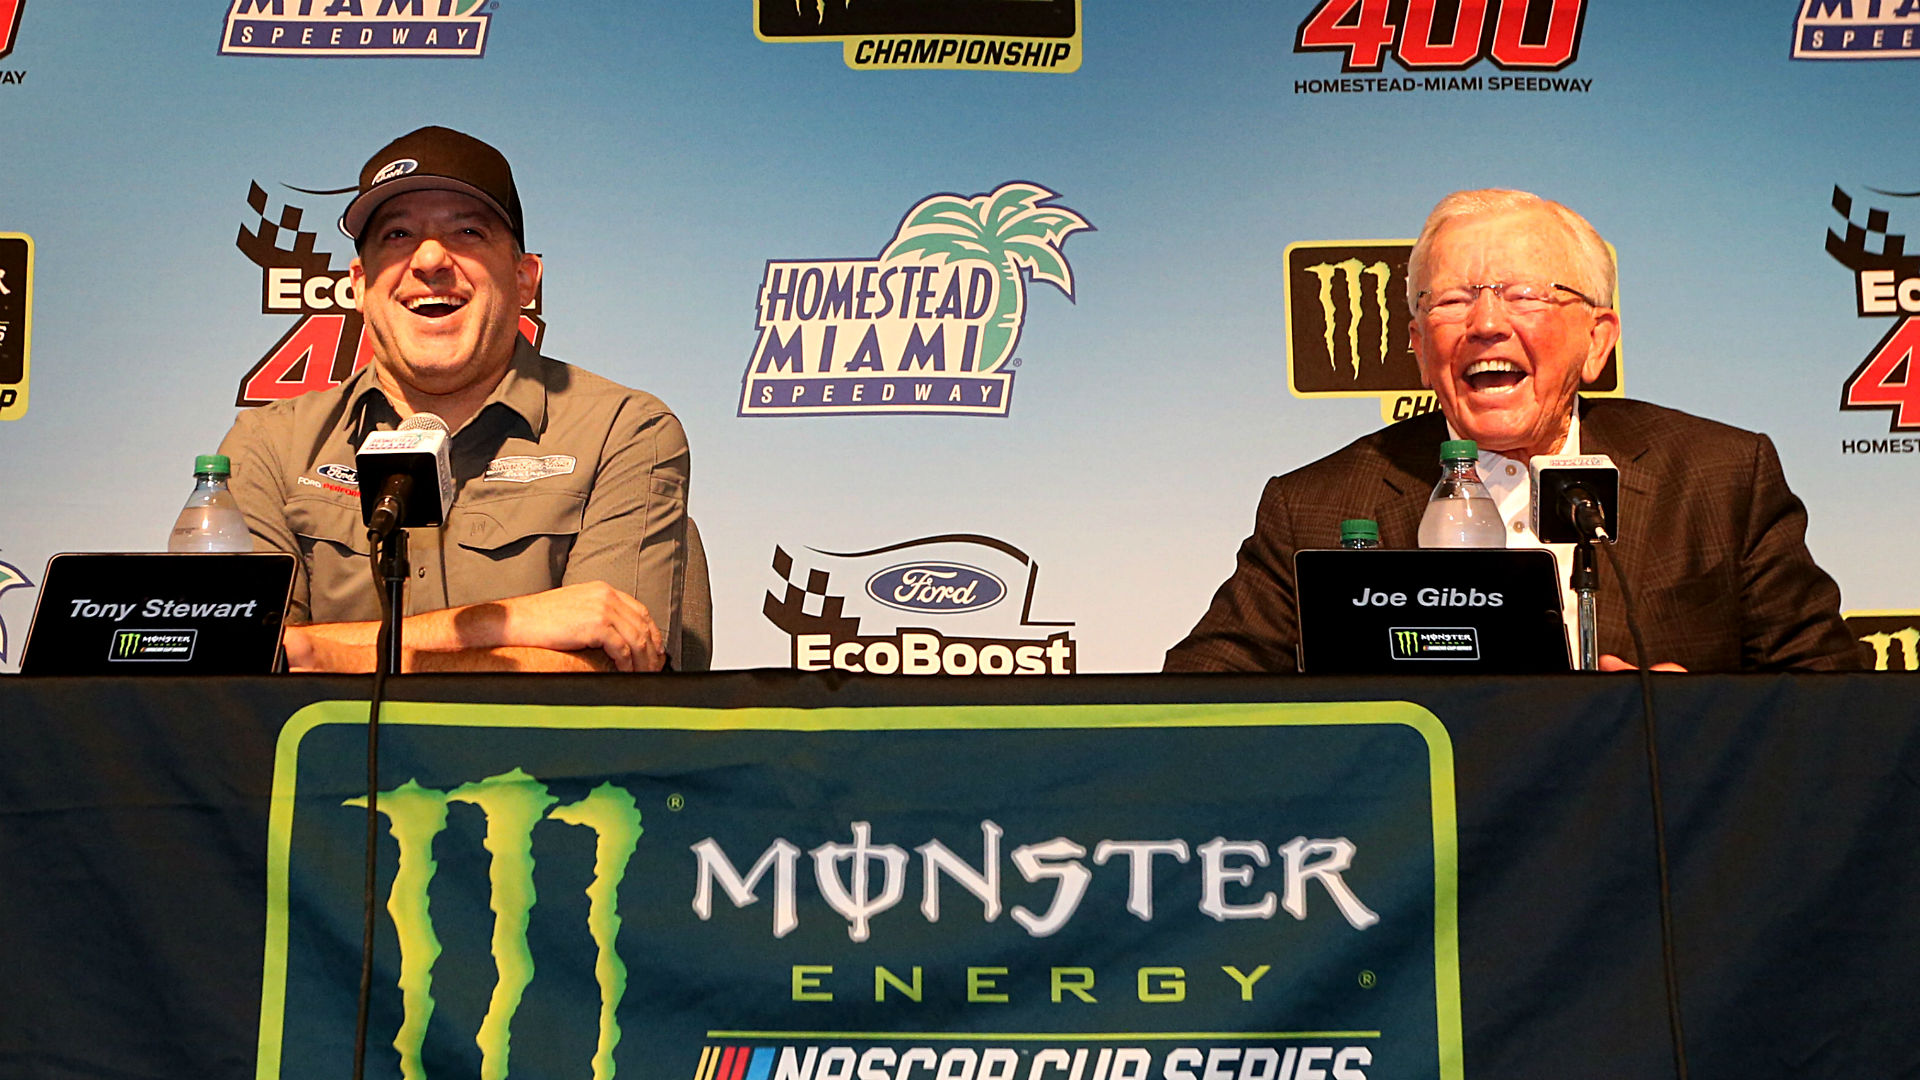 Championship 4 owners Tony Stewart, Joe Gibbs share long-standing connection